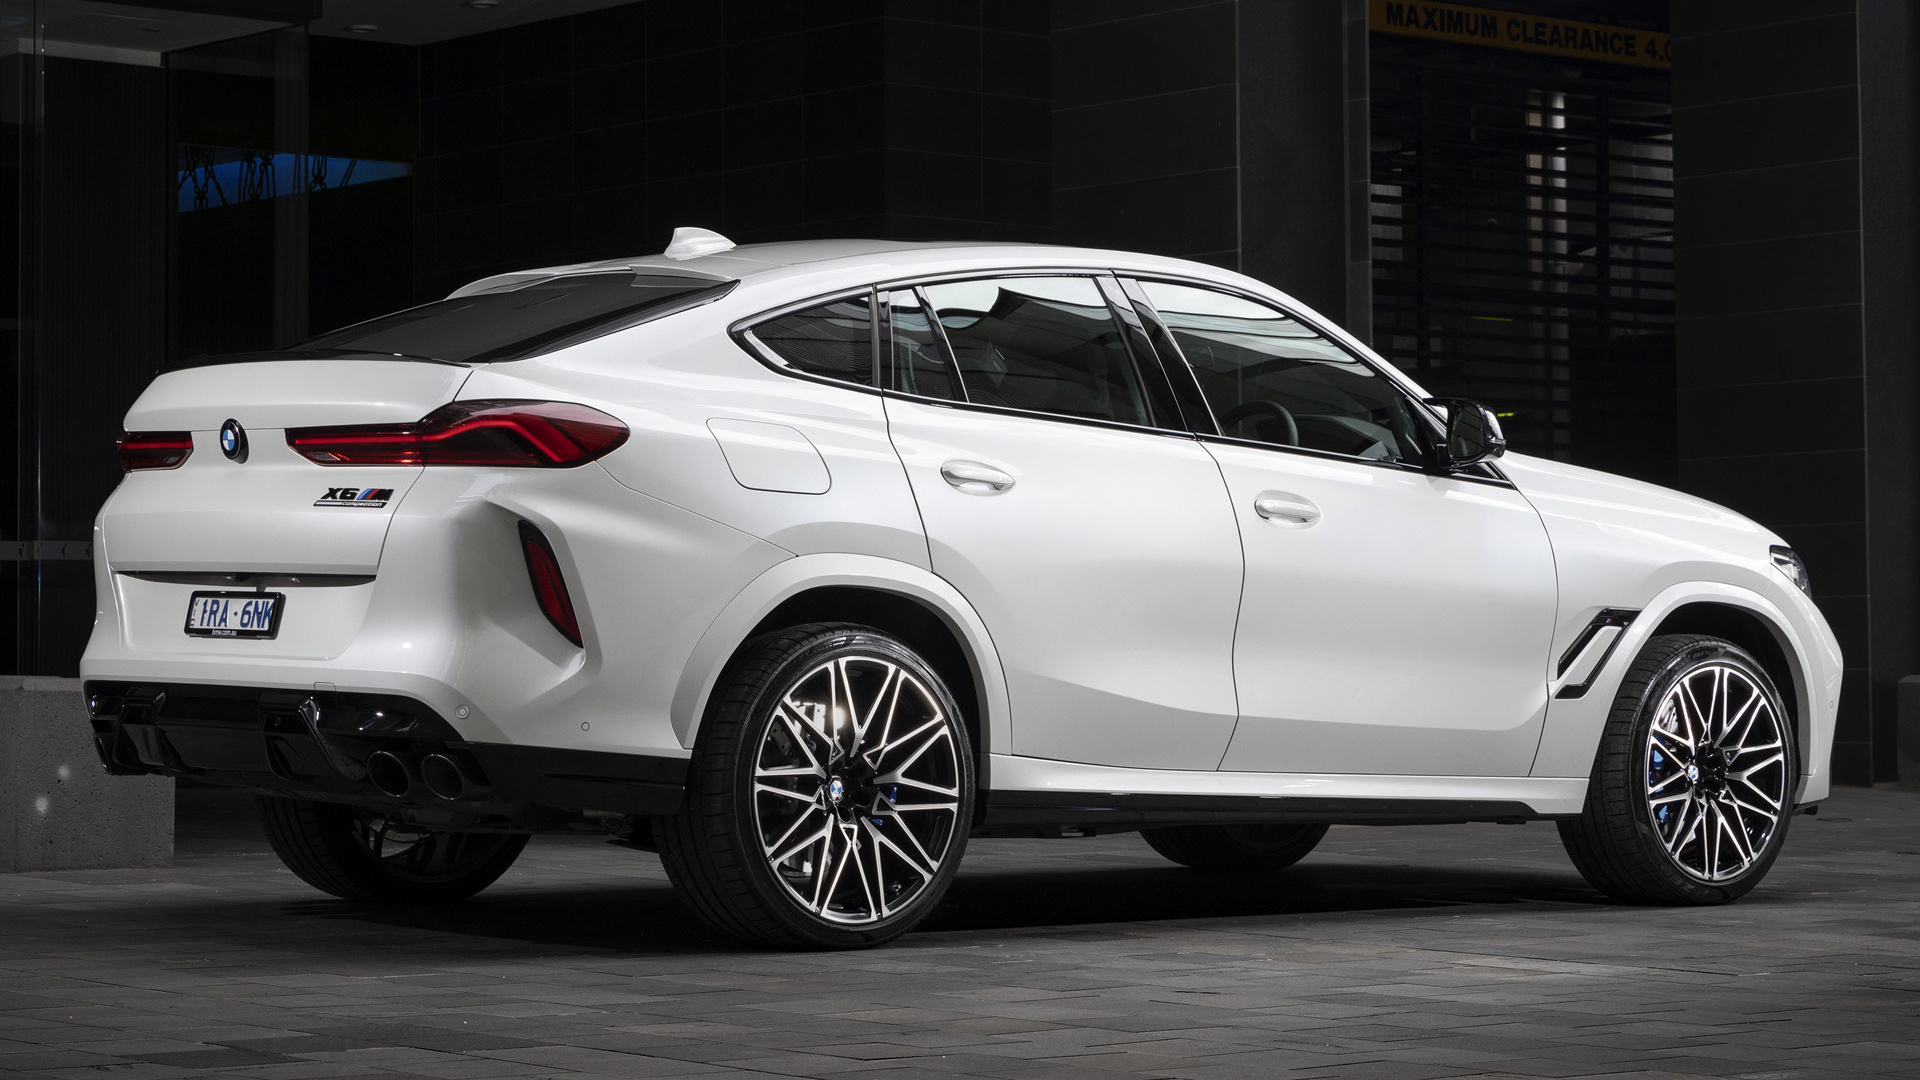 2020 Bmw X6 M Competition Au Wallpapers And Hd Images Car Pixel